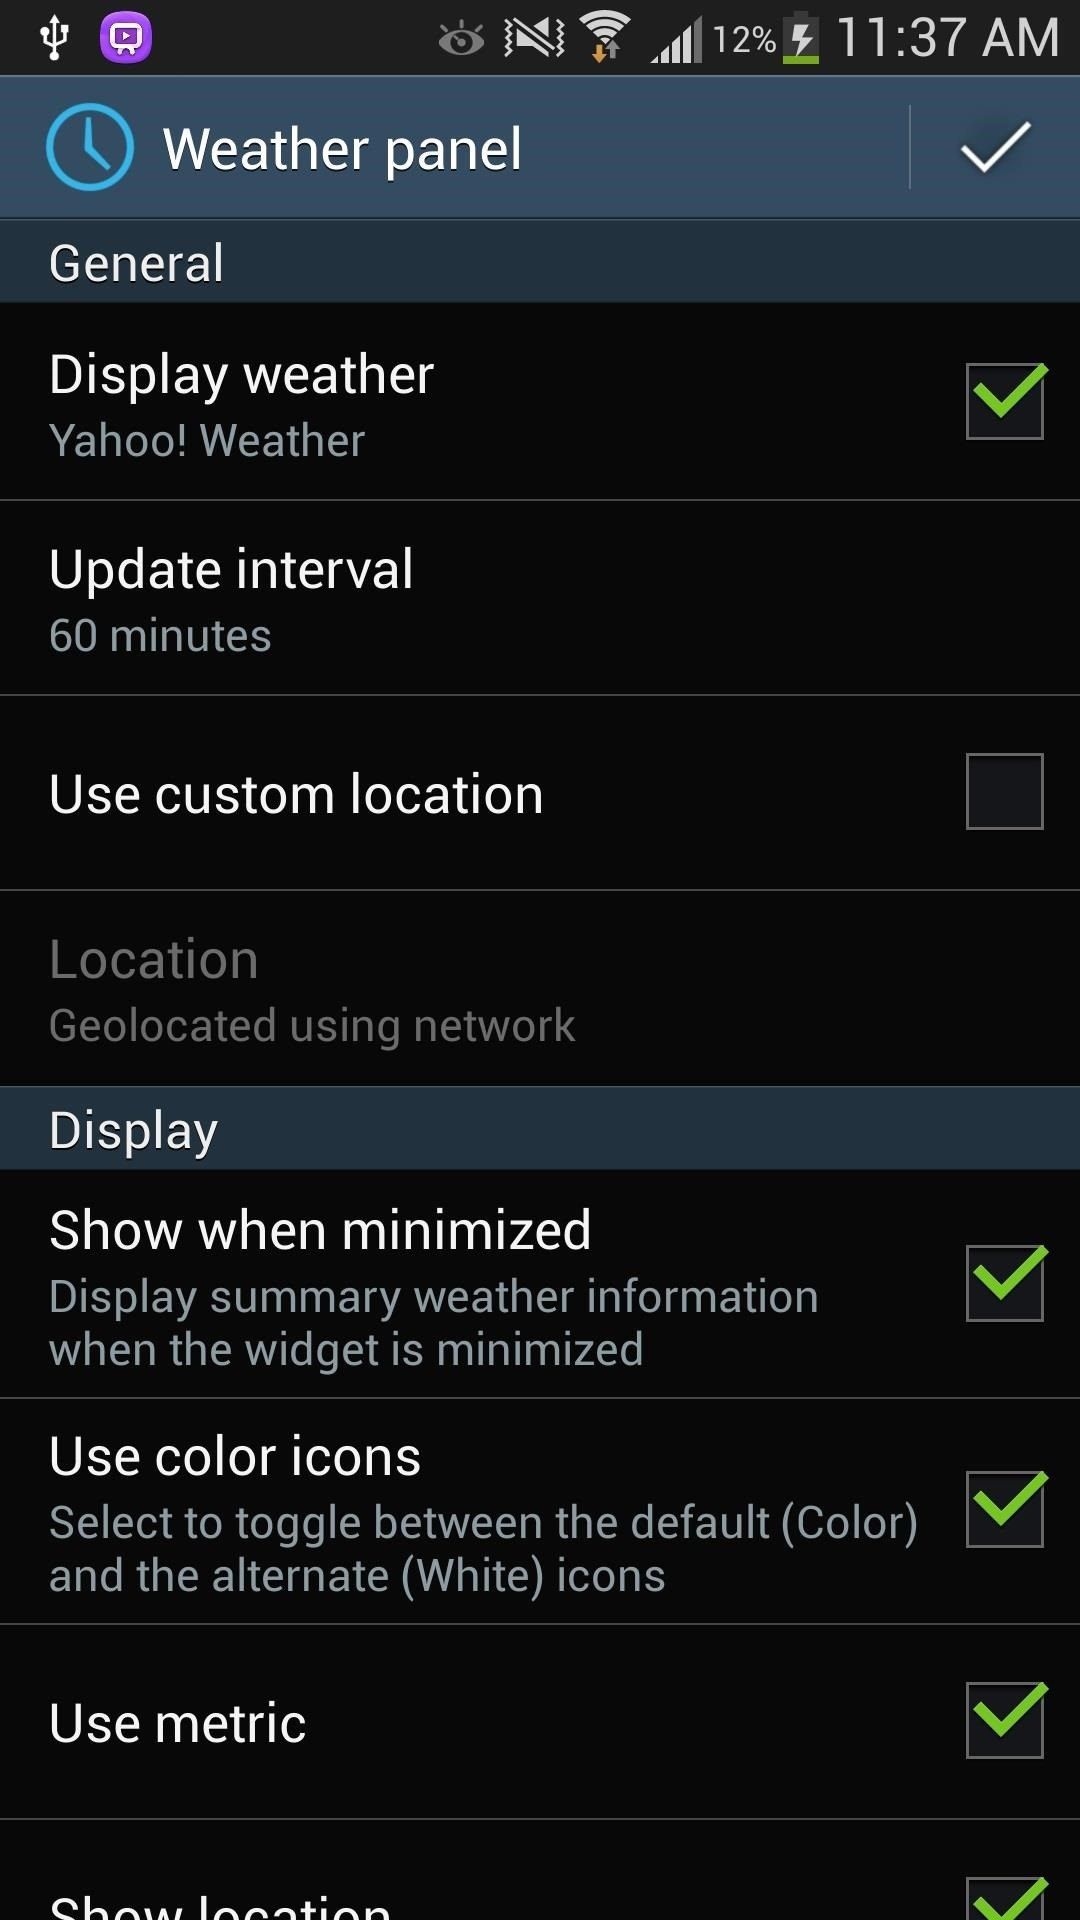 How to Get CyanogenMod's cLock Home & Lock Screen Widget on a Non-Rooted Samsung Galaxy S4